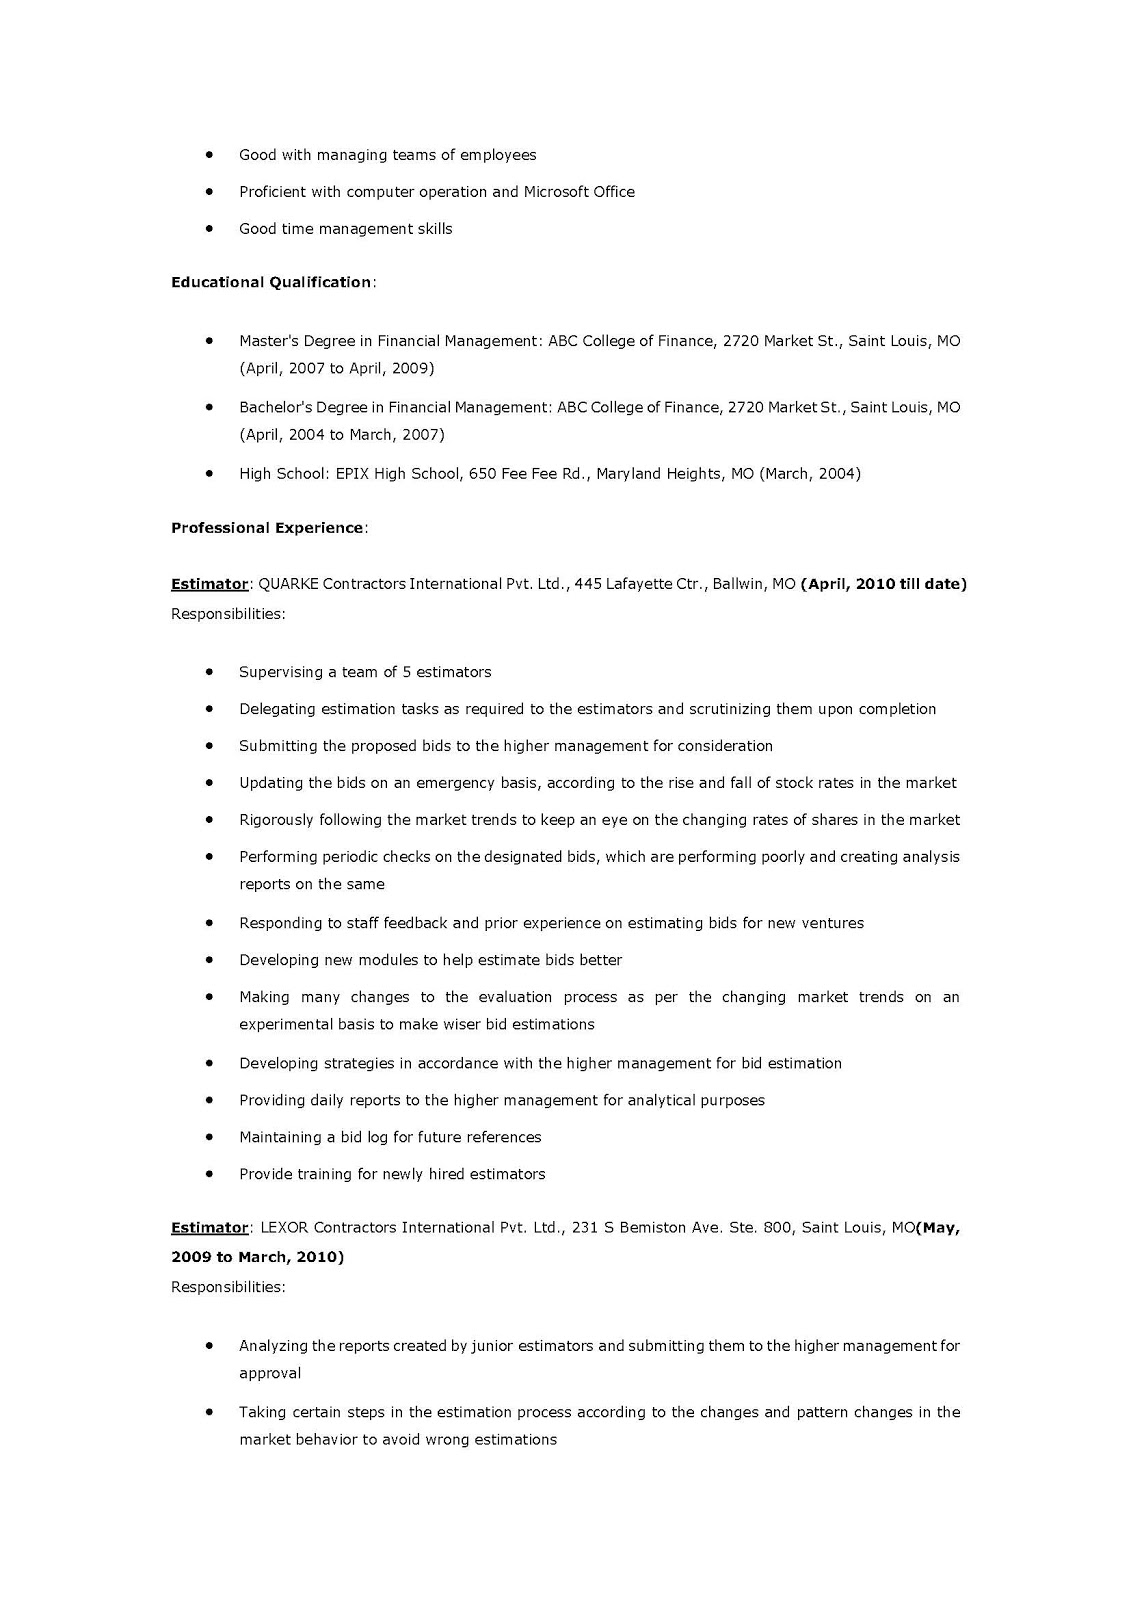 Resume Samples: Estimator Resume